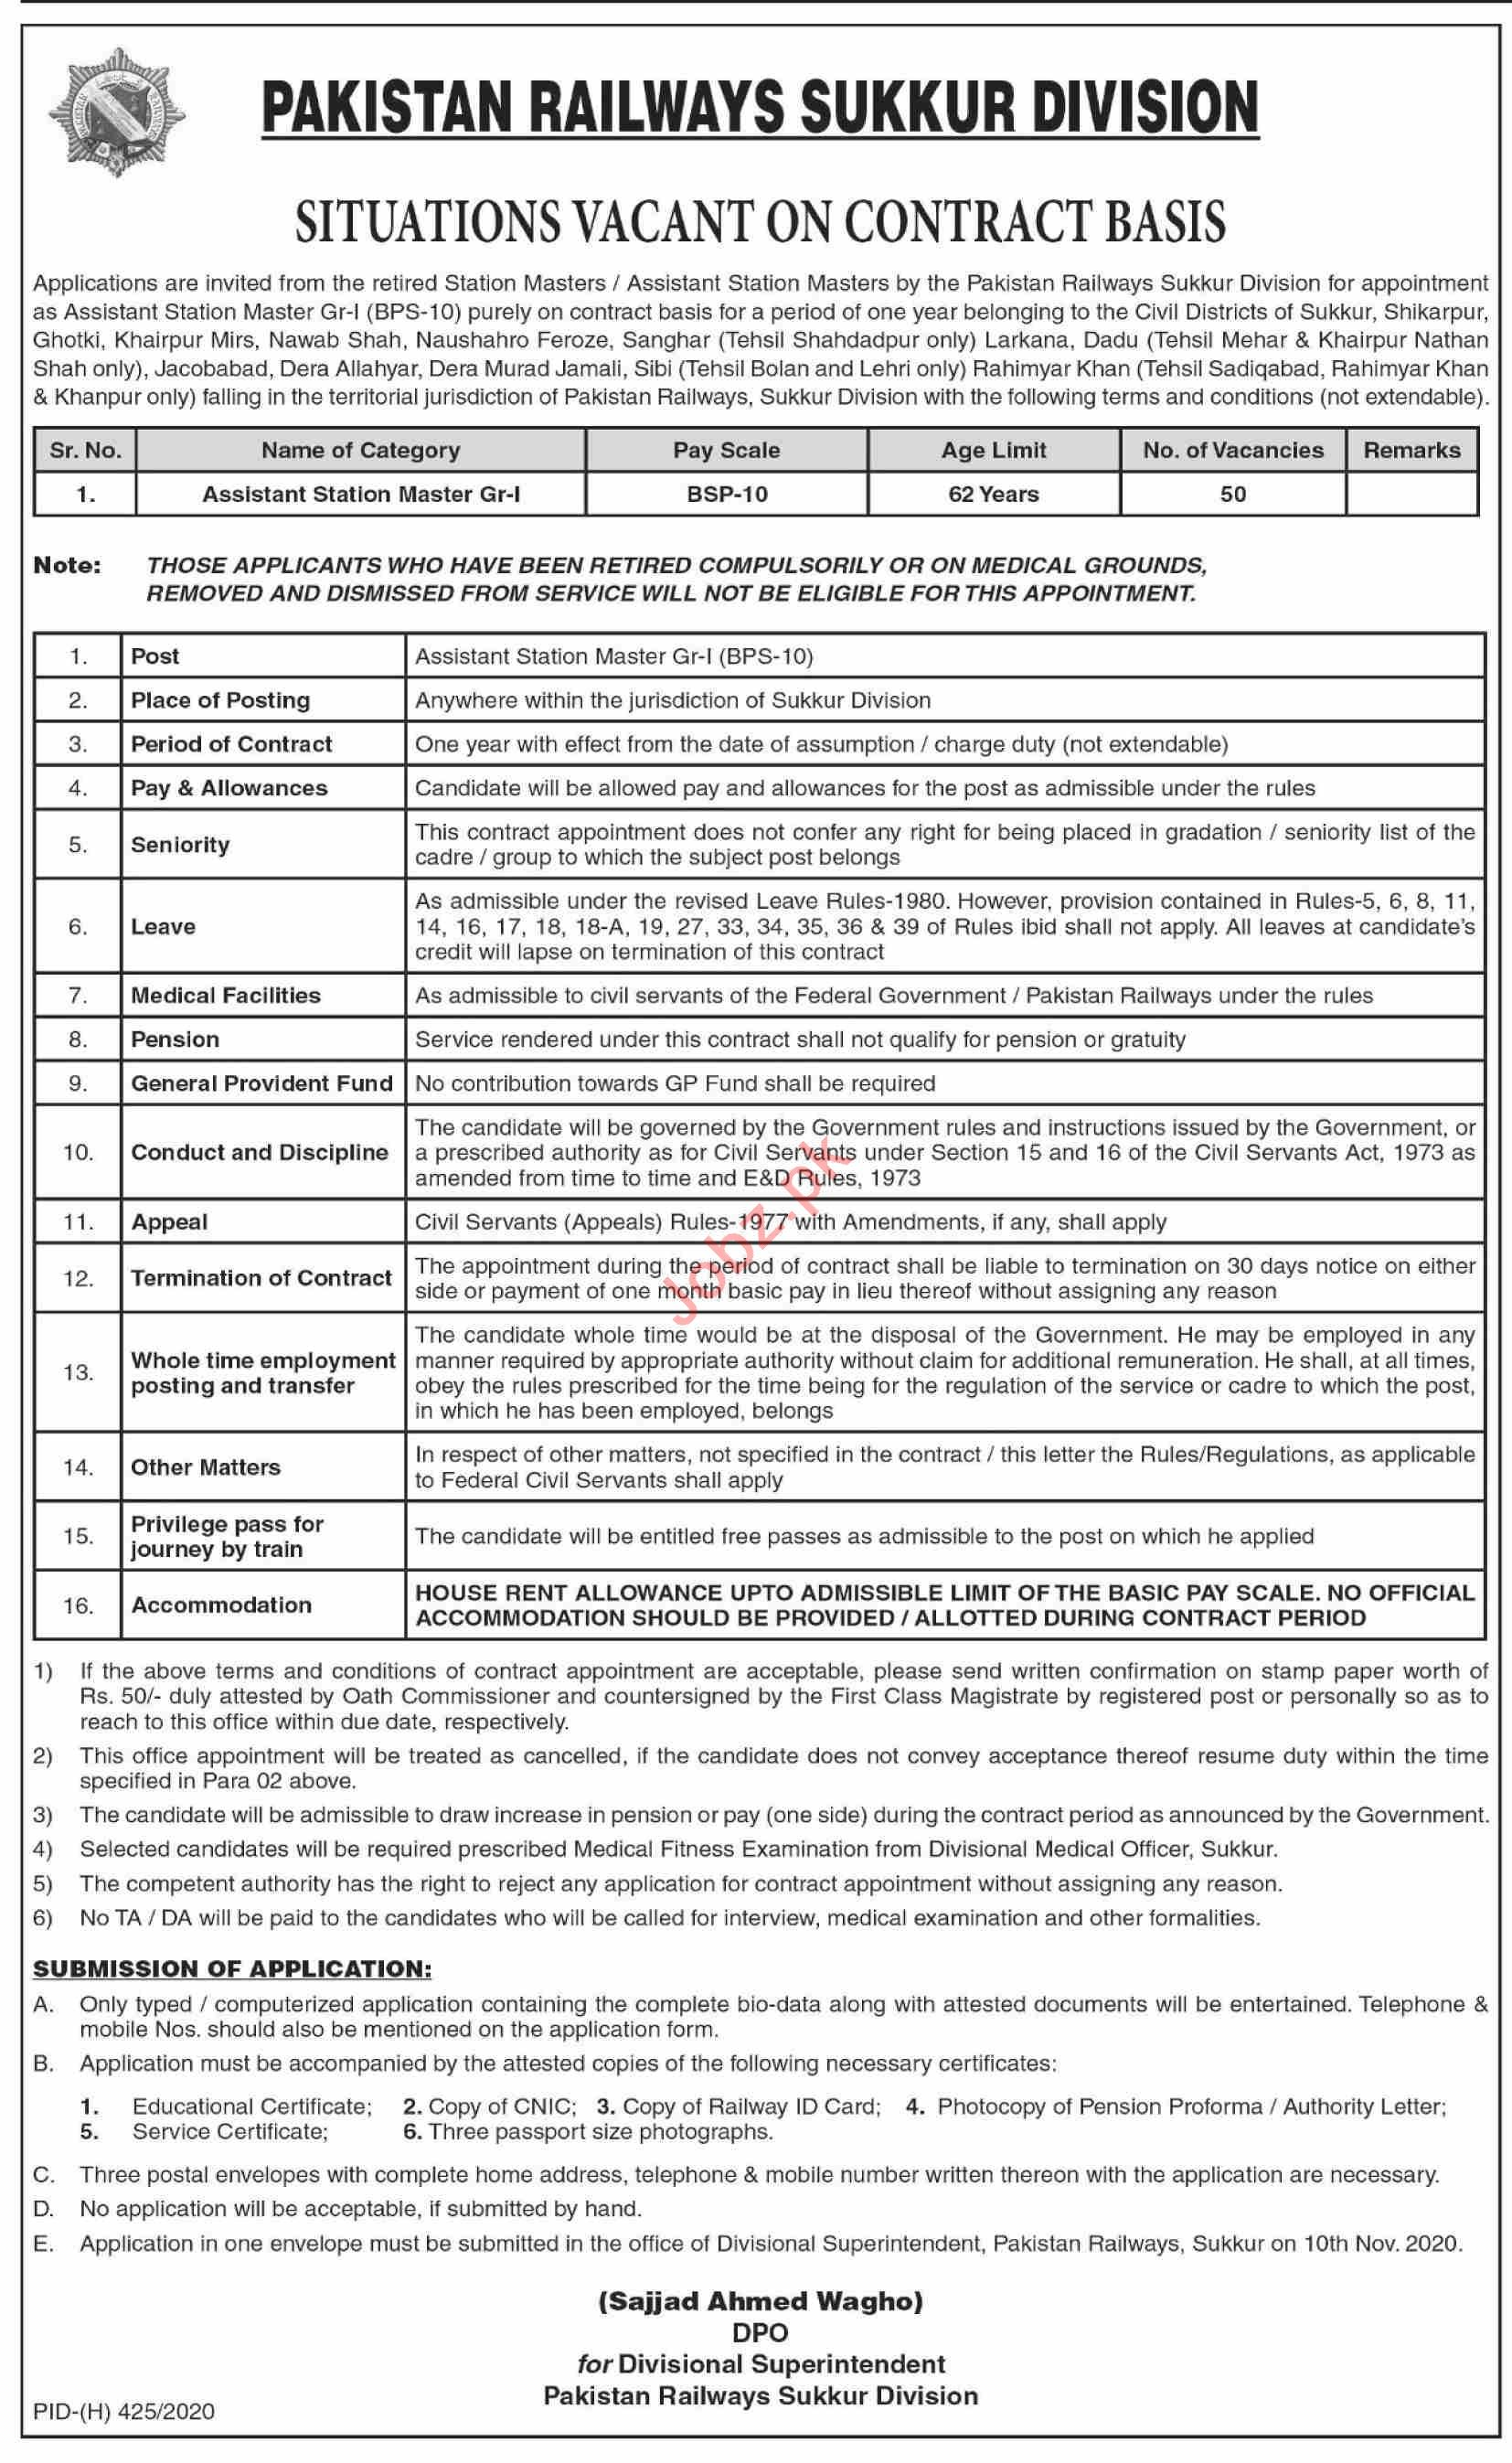 Pakistan Railways Sukkur Division Jobs 2020 Station Master